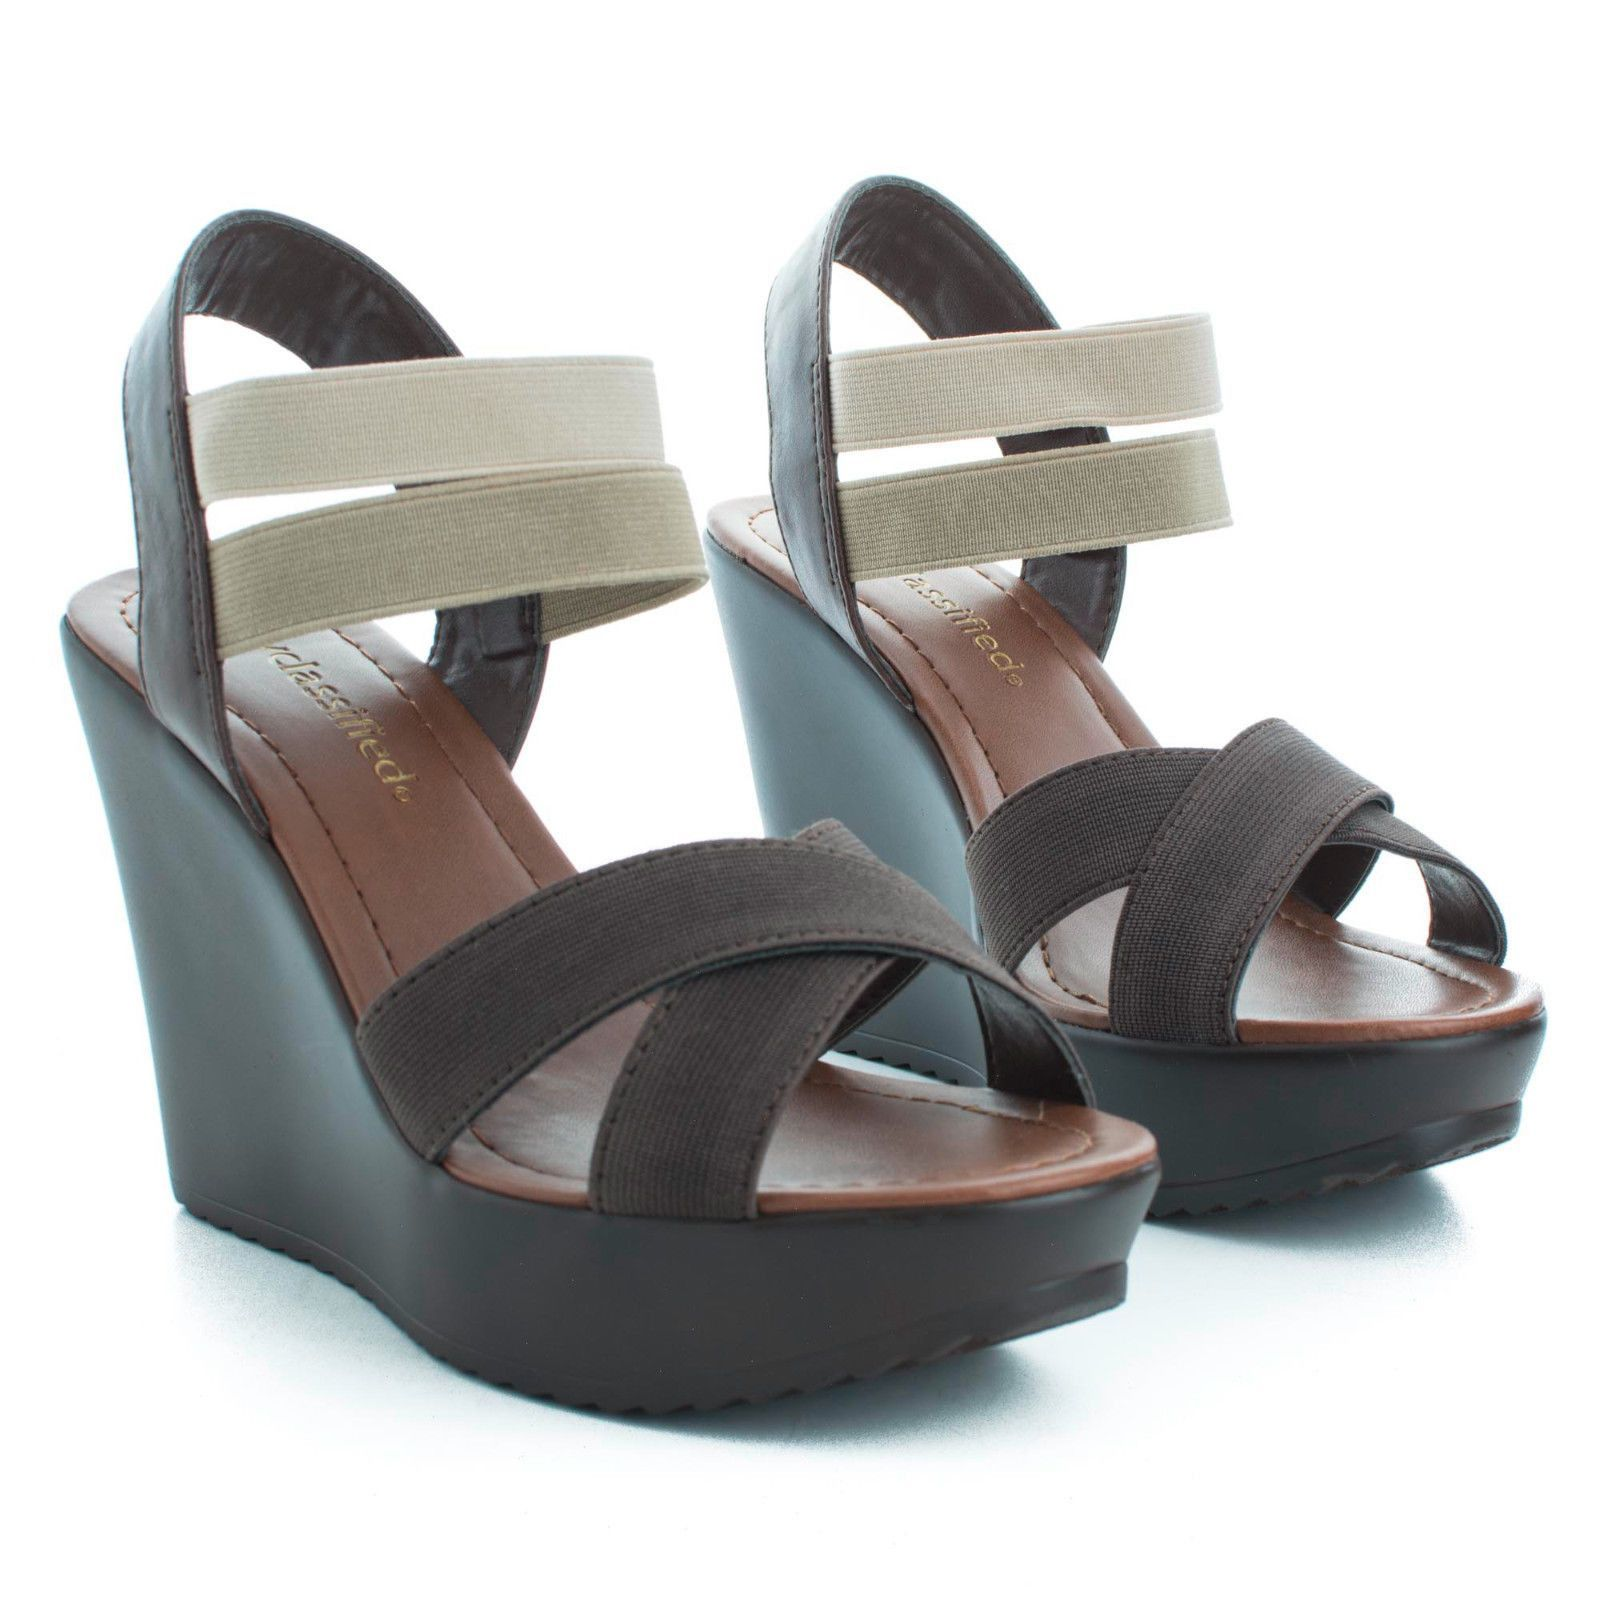 Benny Open Toe Strappy Elastic Ankle Cuff Platform Casual Wedges Women Shoes